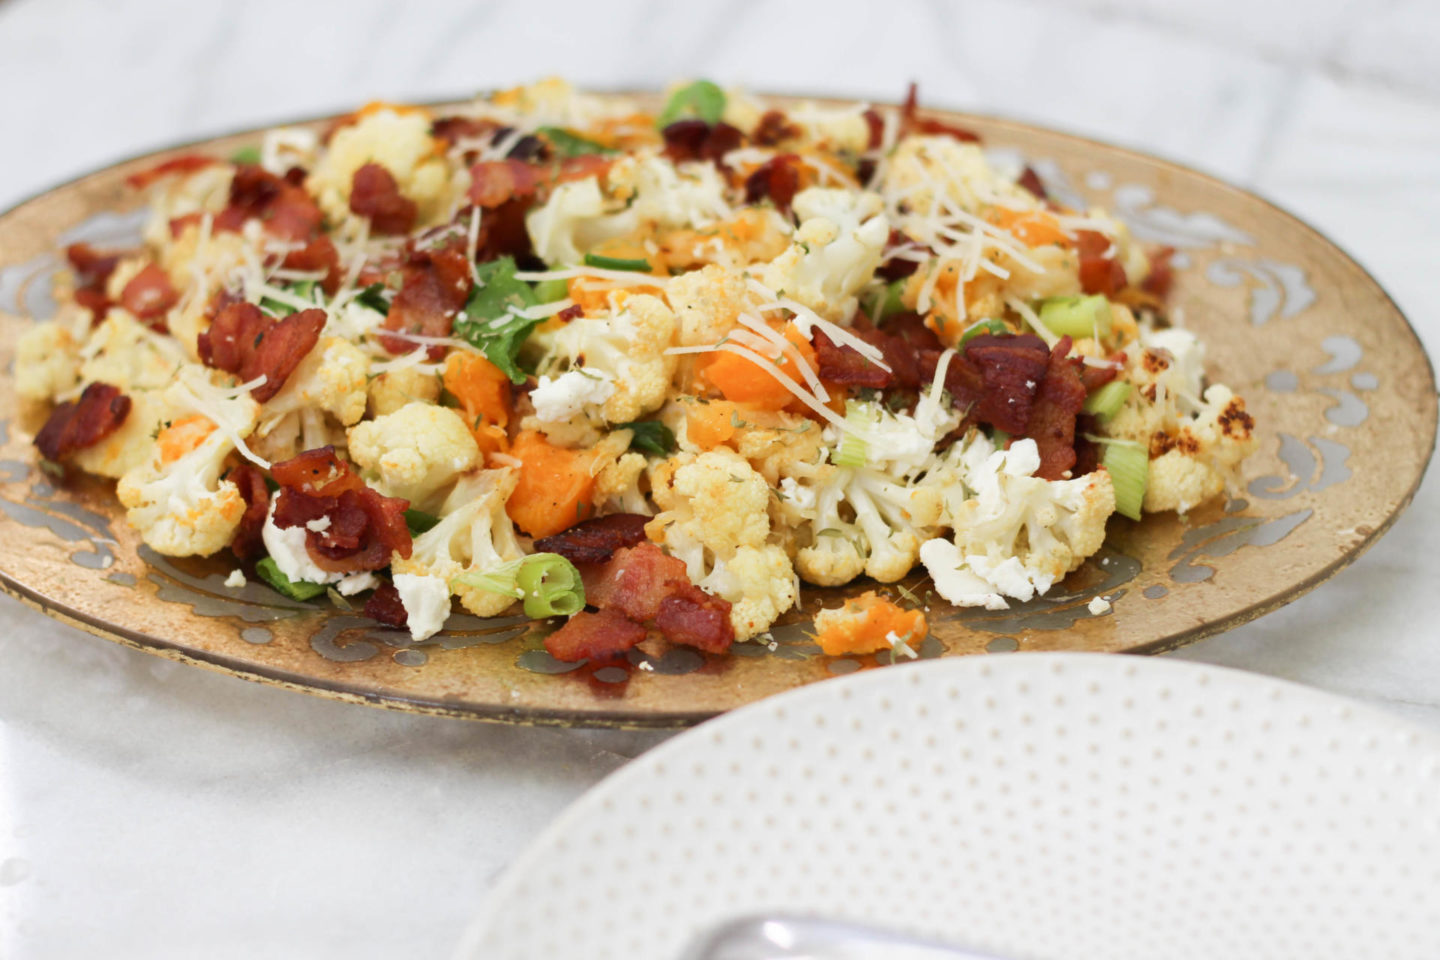 Holiday Ready Roasted Squash Salad by New York blogger Style Waltz